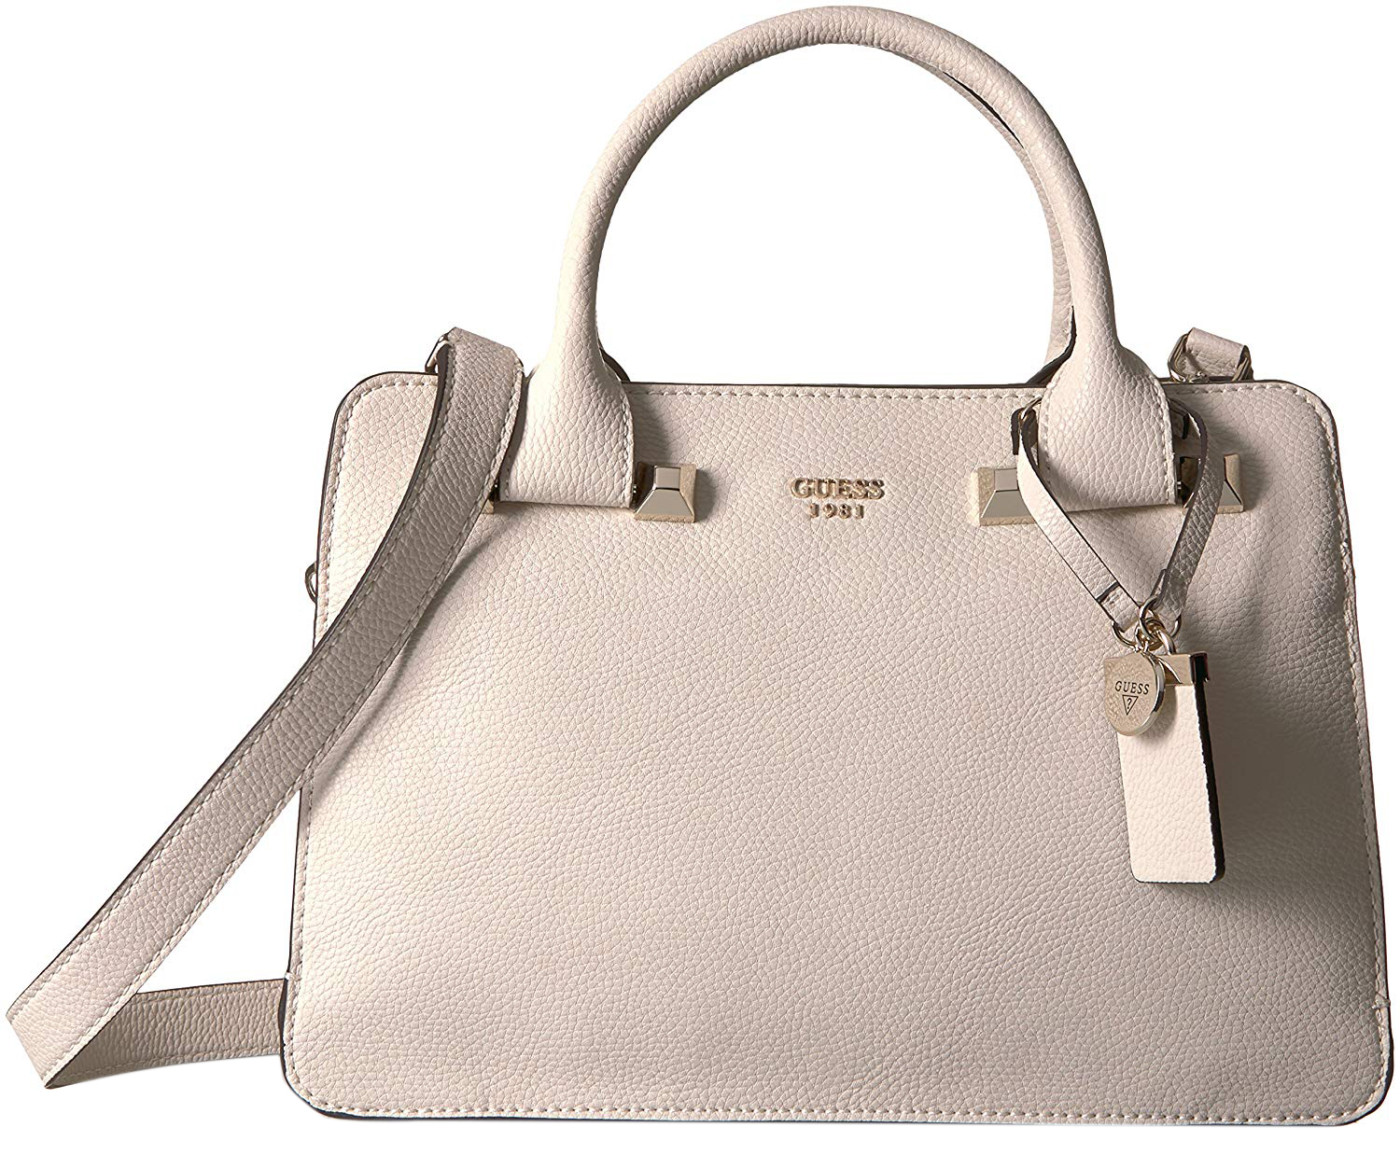 dc288cdbf232 GUESS Women s Stone Leather Talan Large Top Handle Satchel Bag